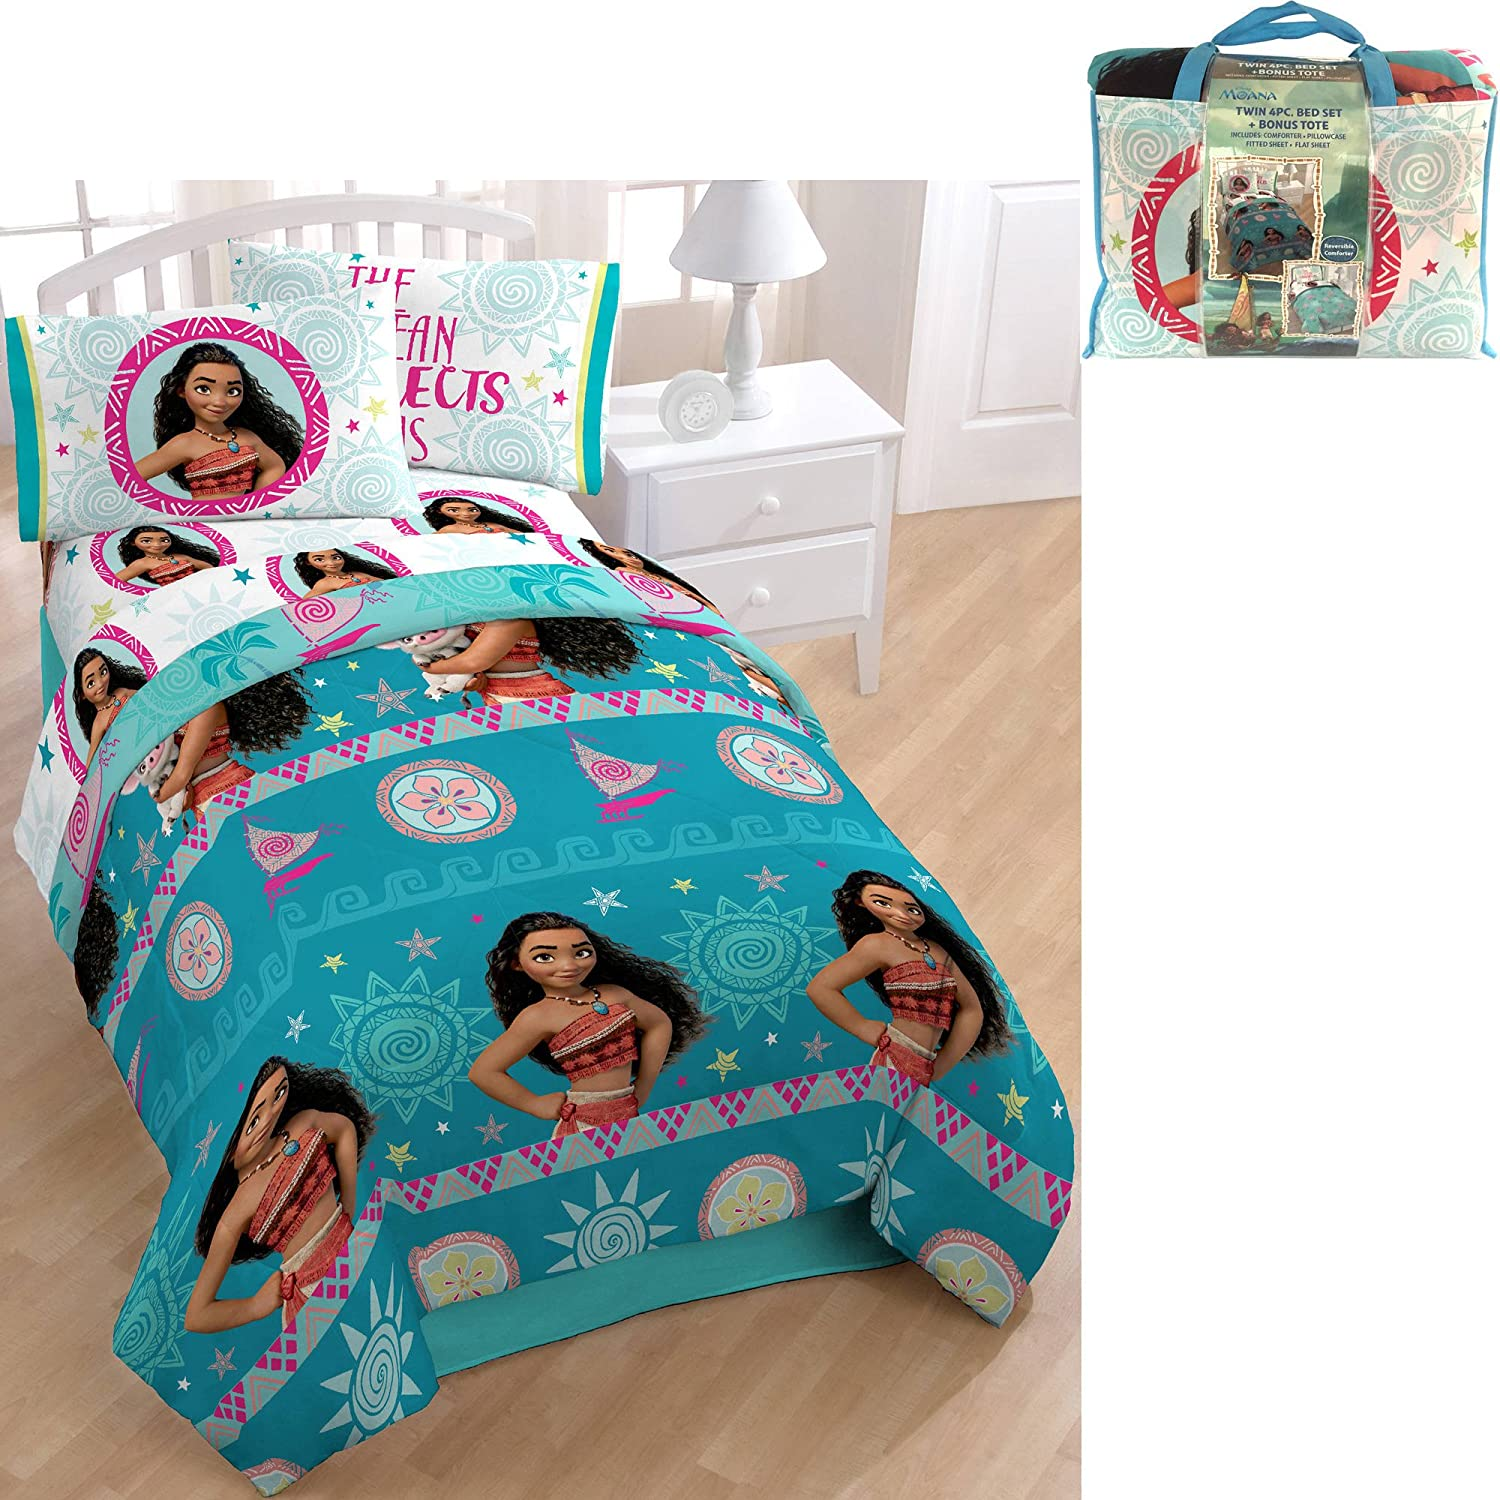 Amazon NEW Disney Moana 4 Piece Twin Size Bed in a Bag Bedding